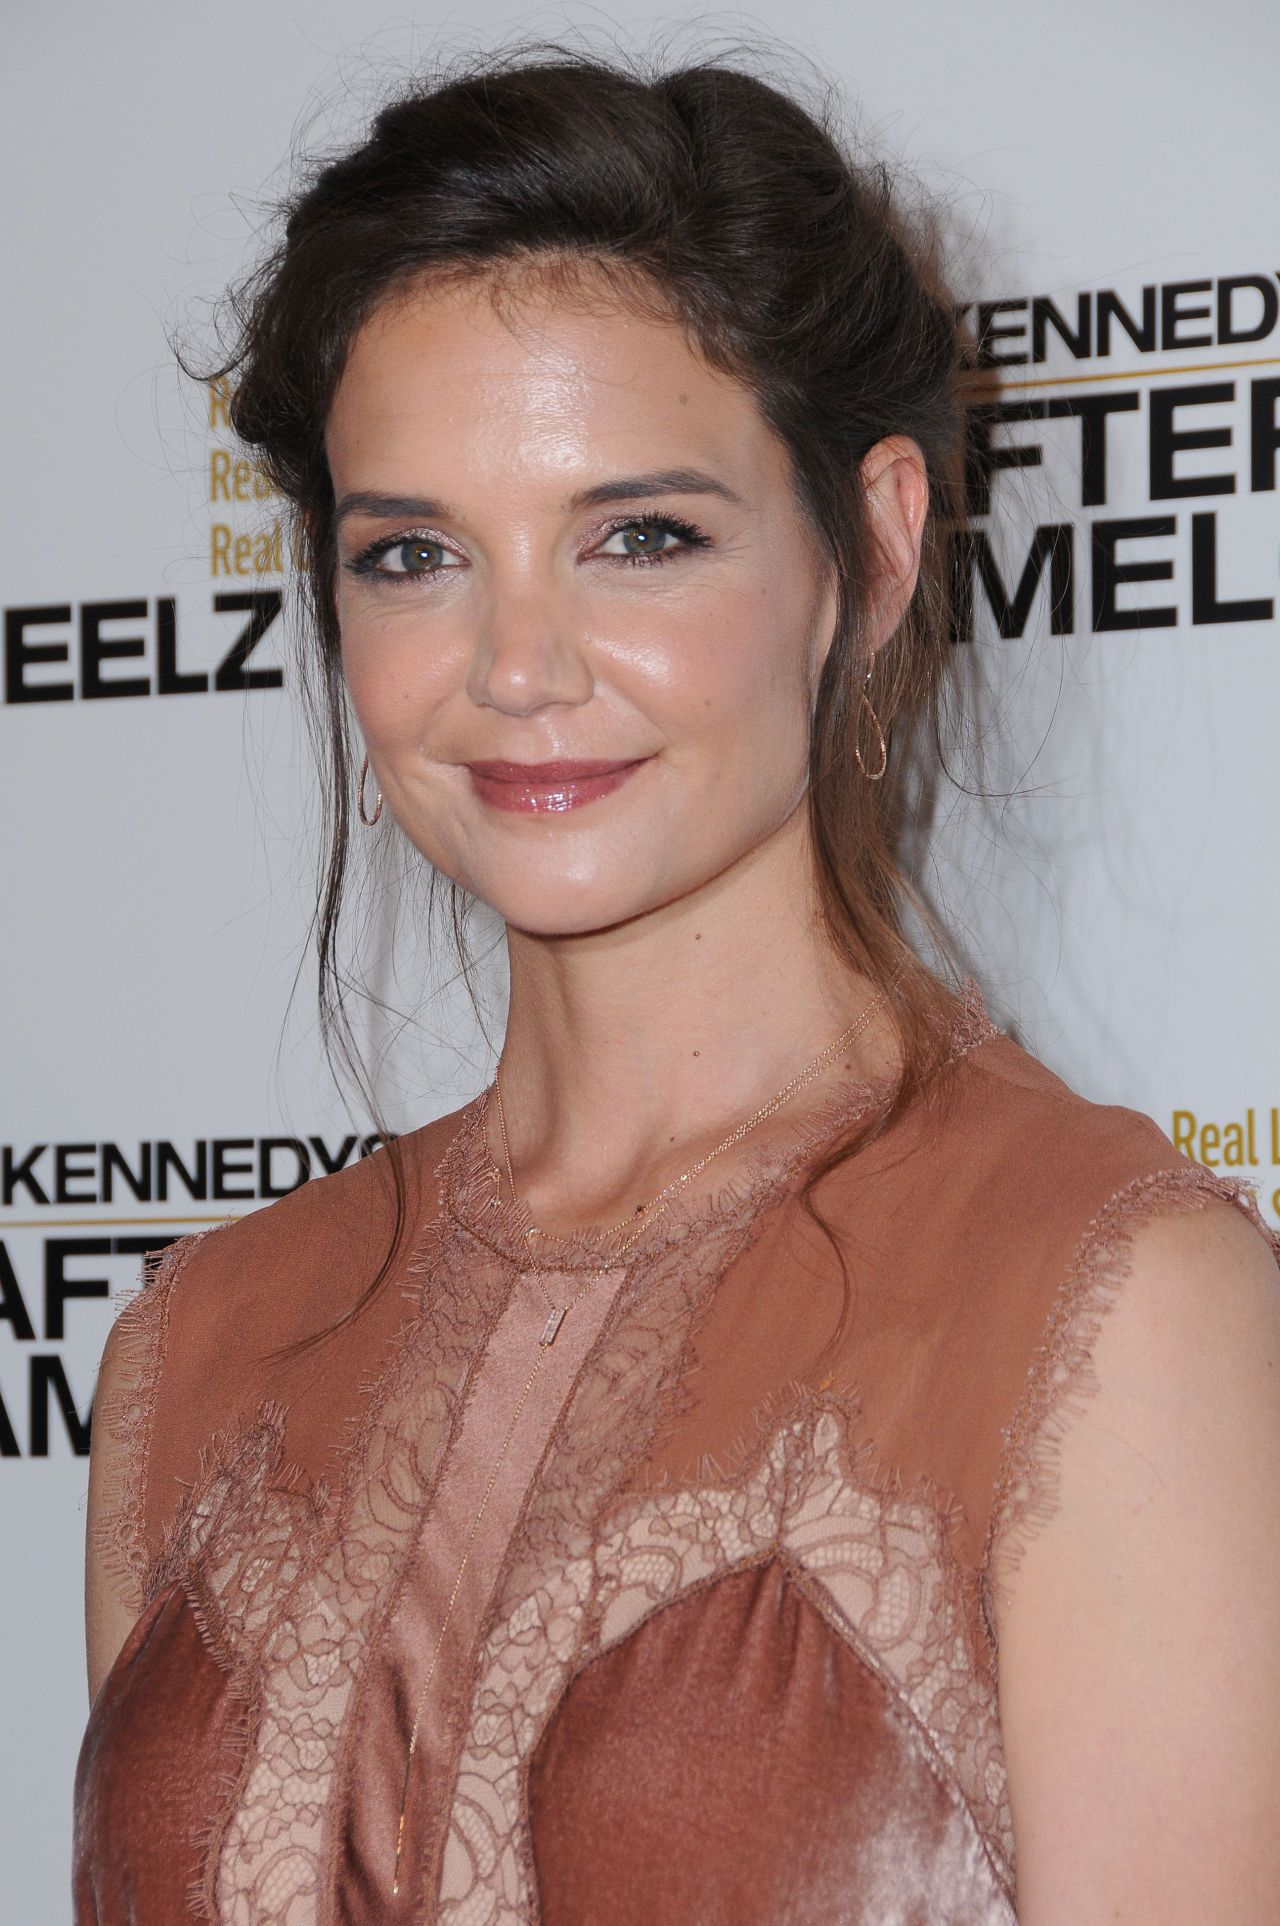 Katie Holmes - REELZ The Kennedys - After Camelot ... Katie Holmes